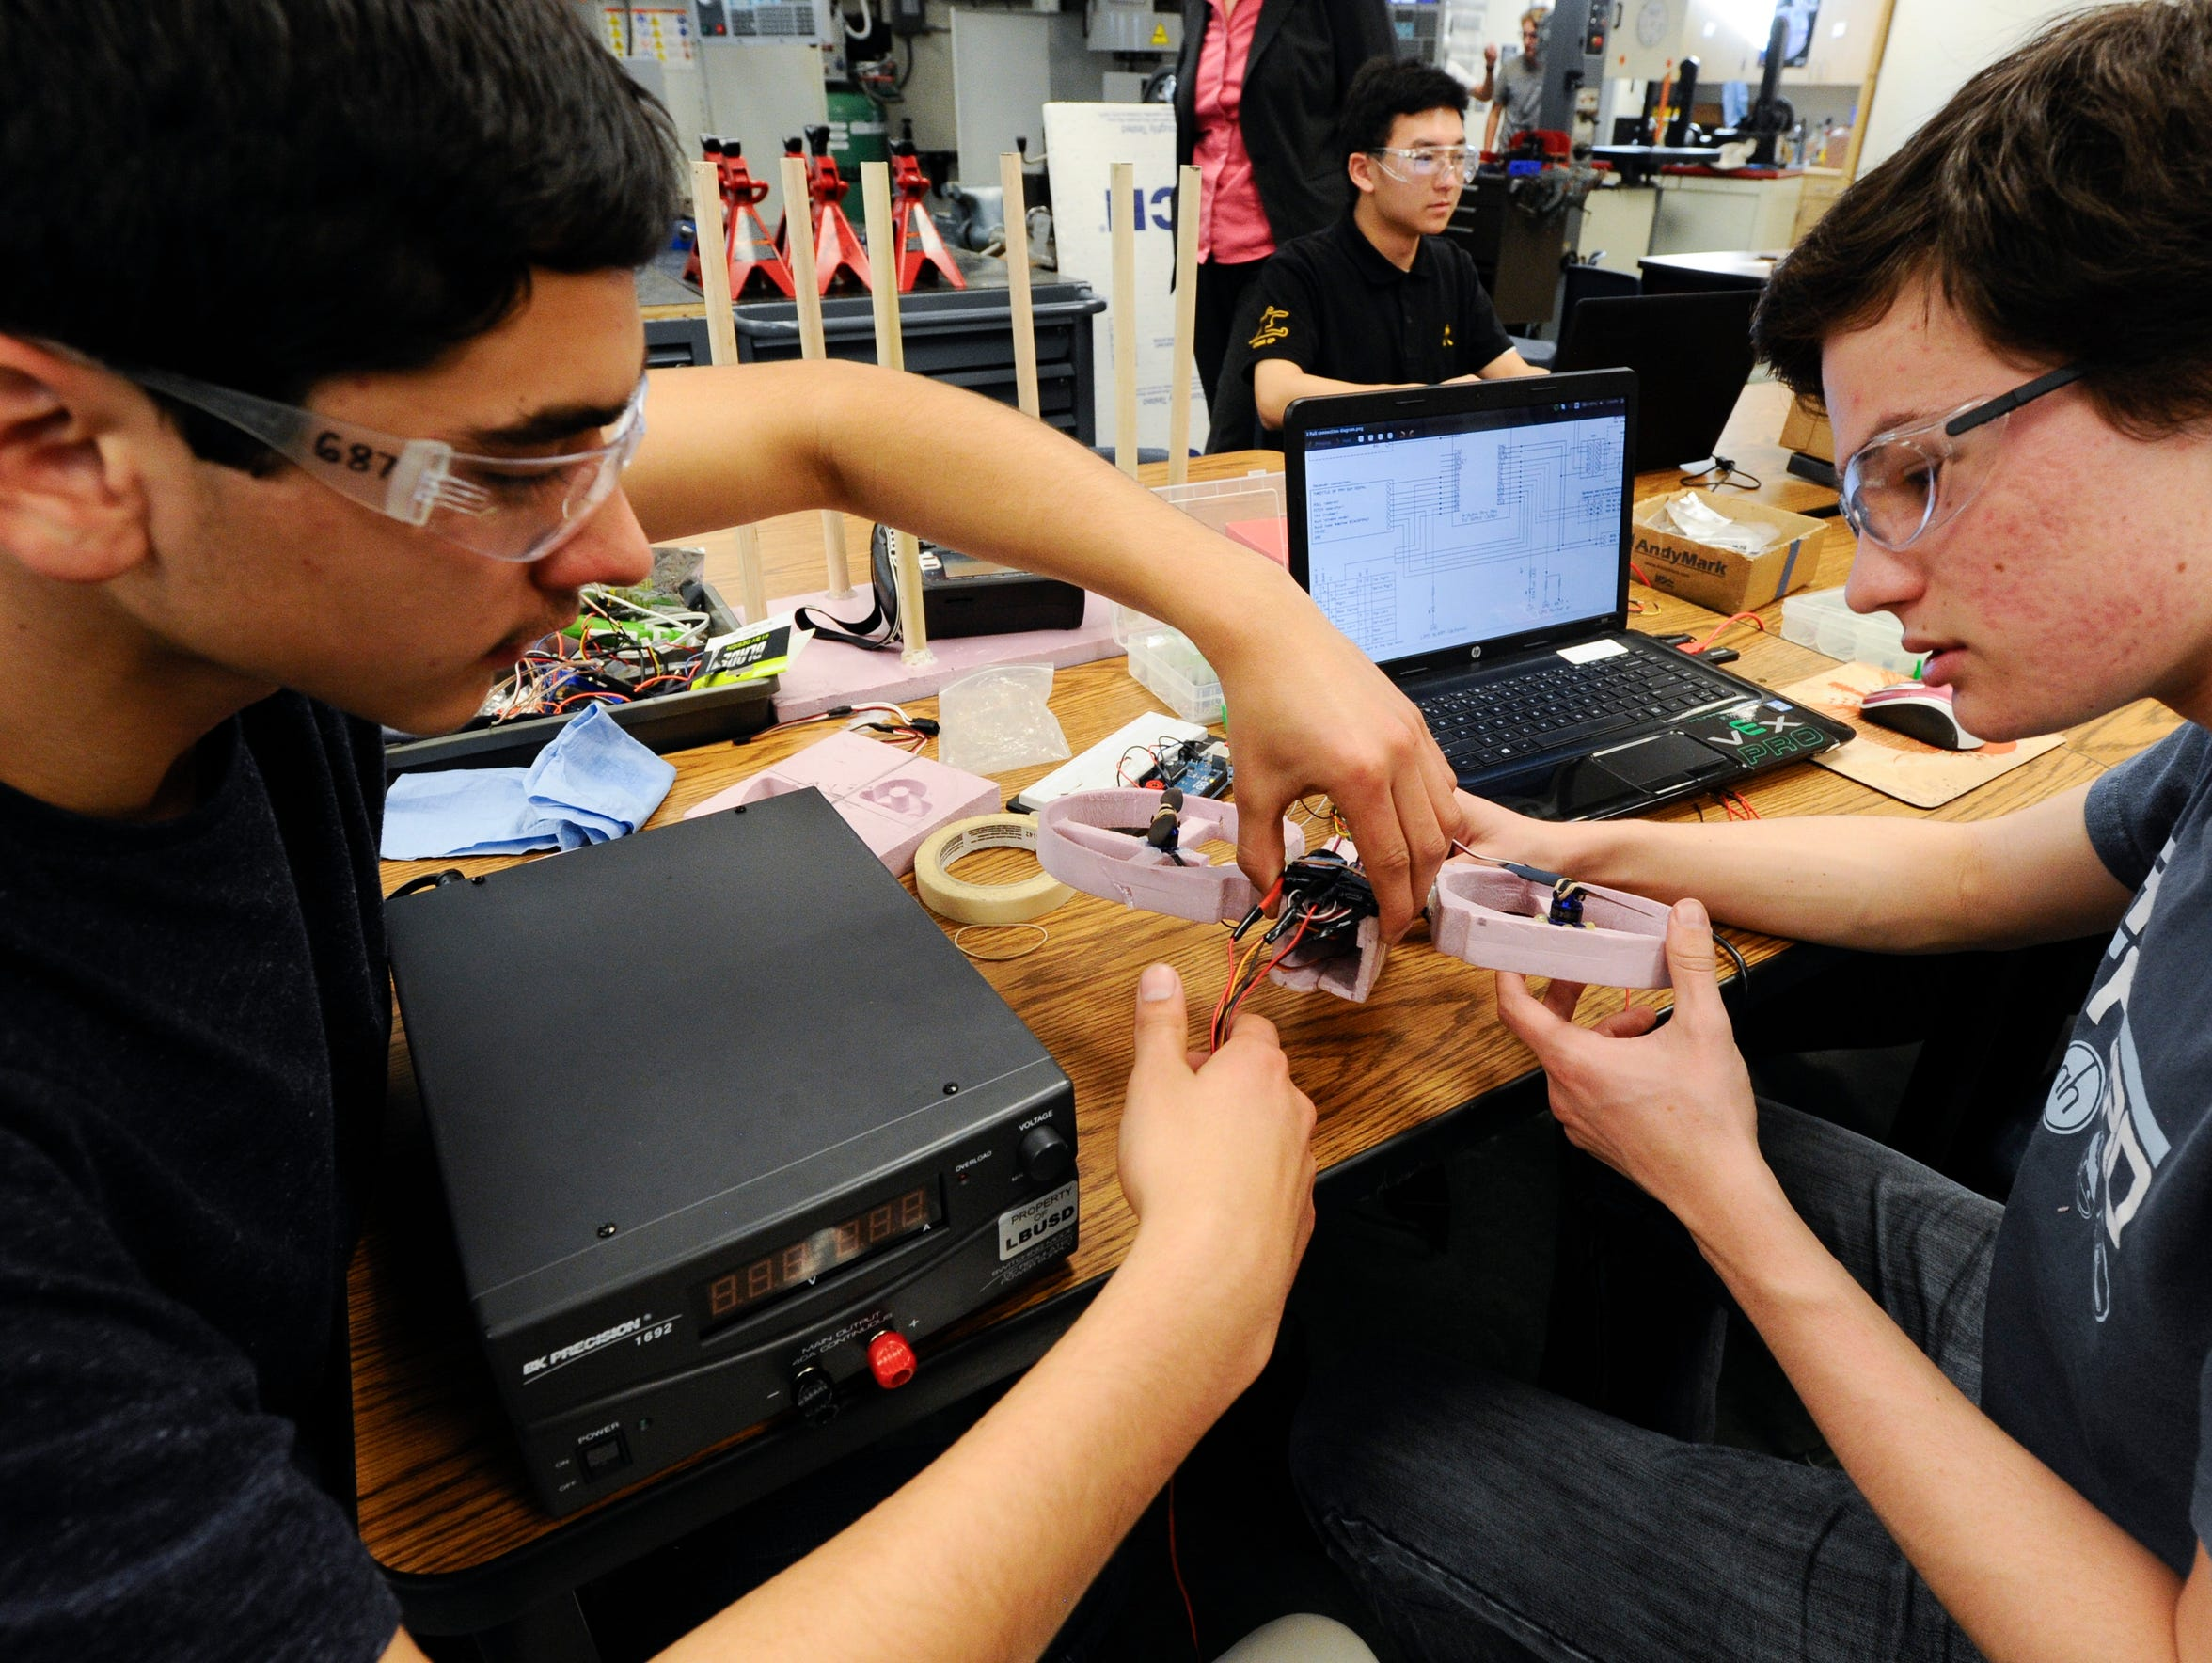 Isaiah Stanley (left) and Dietrich Henson work on assembling